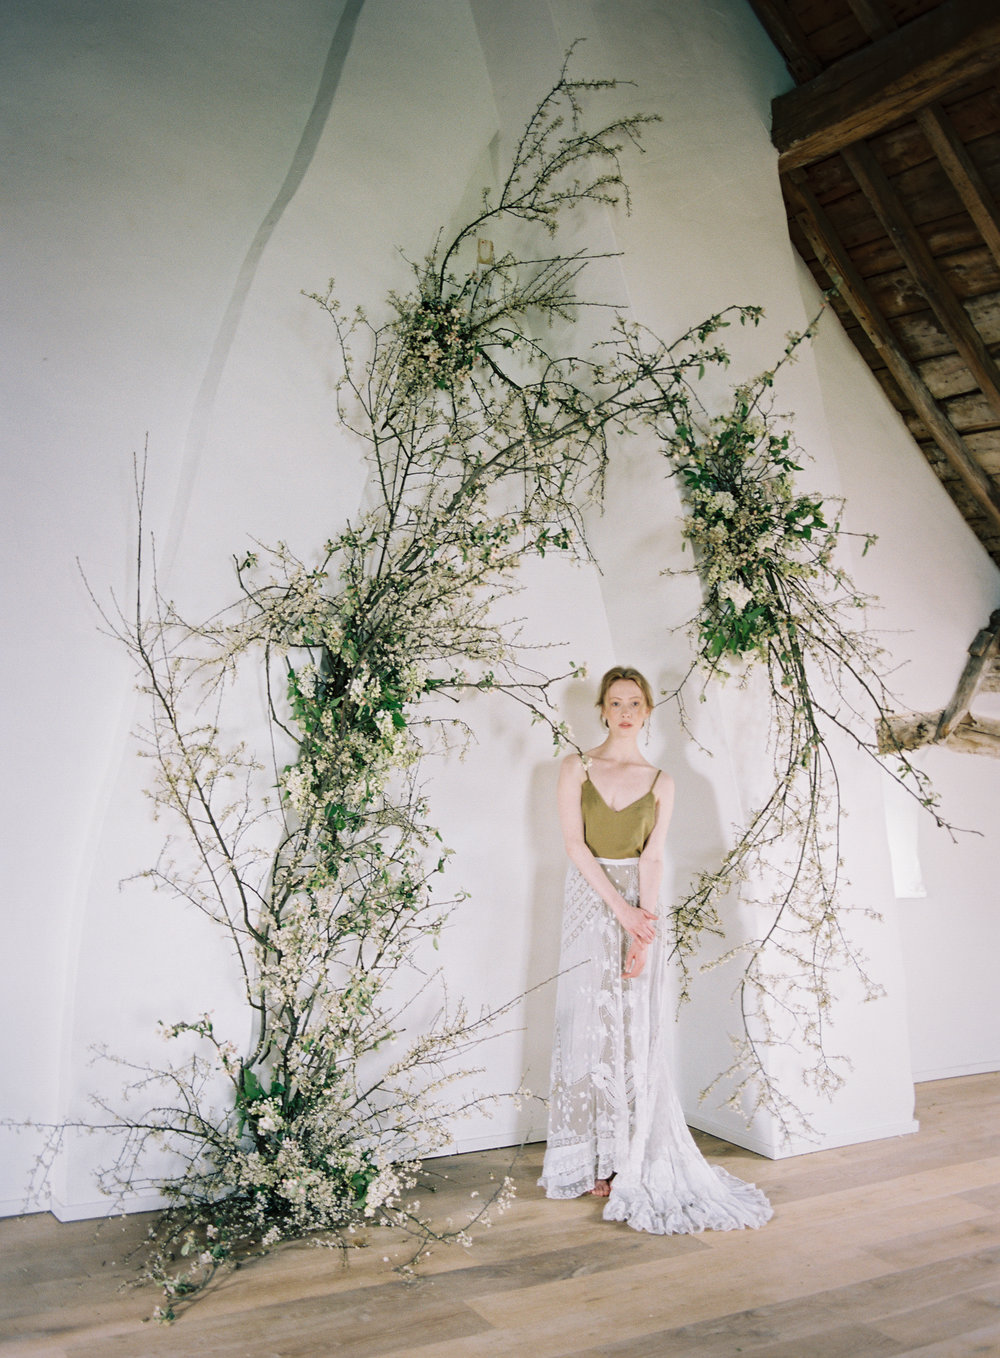 NECTAR + BLOOM | Taylor & Porter Photographs | spring branches arch installation